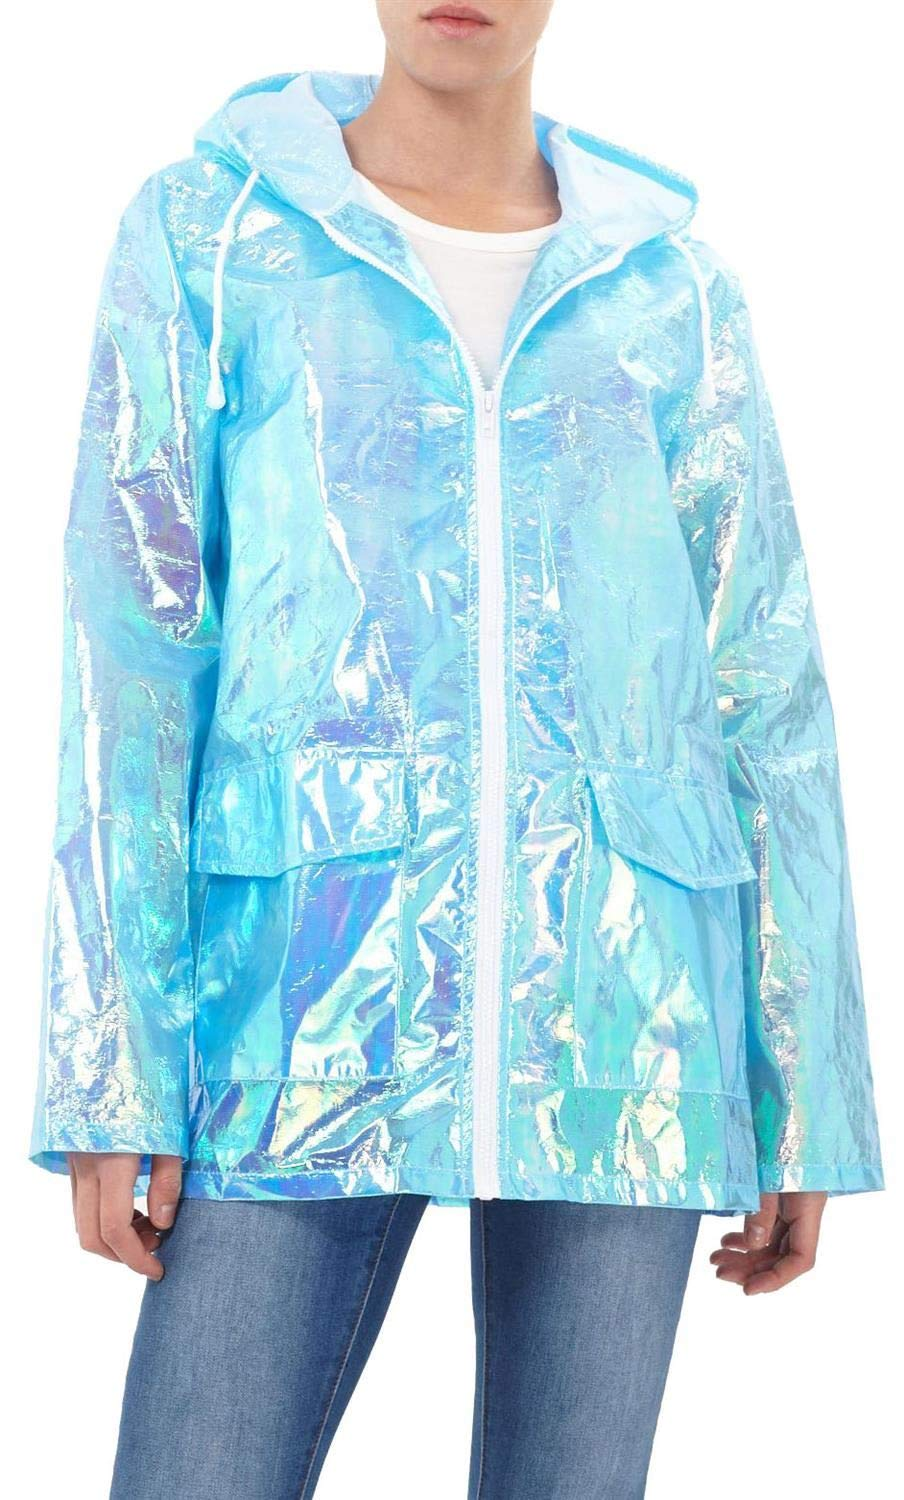 CHOCOLATE PICKLE Women's Holographic Hooded Lightweight Fluorescent Festival Kagool Raincoat Mac Jacket 8-14